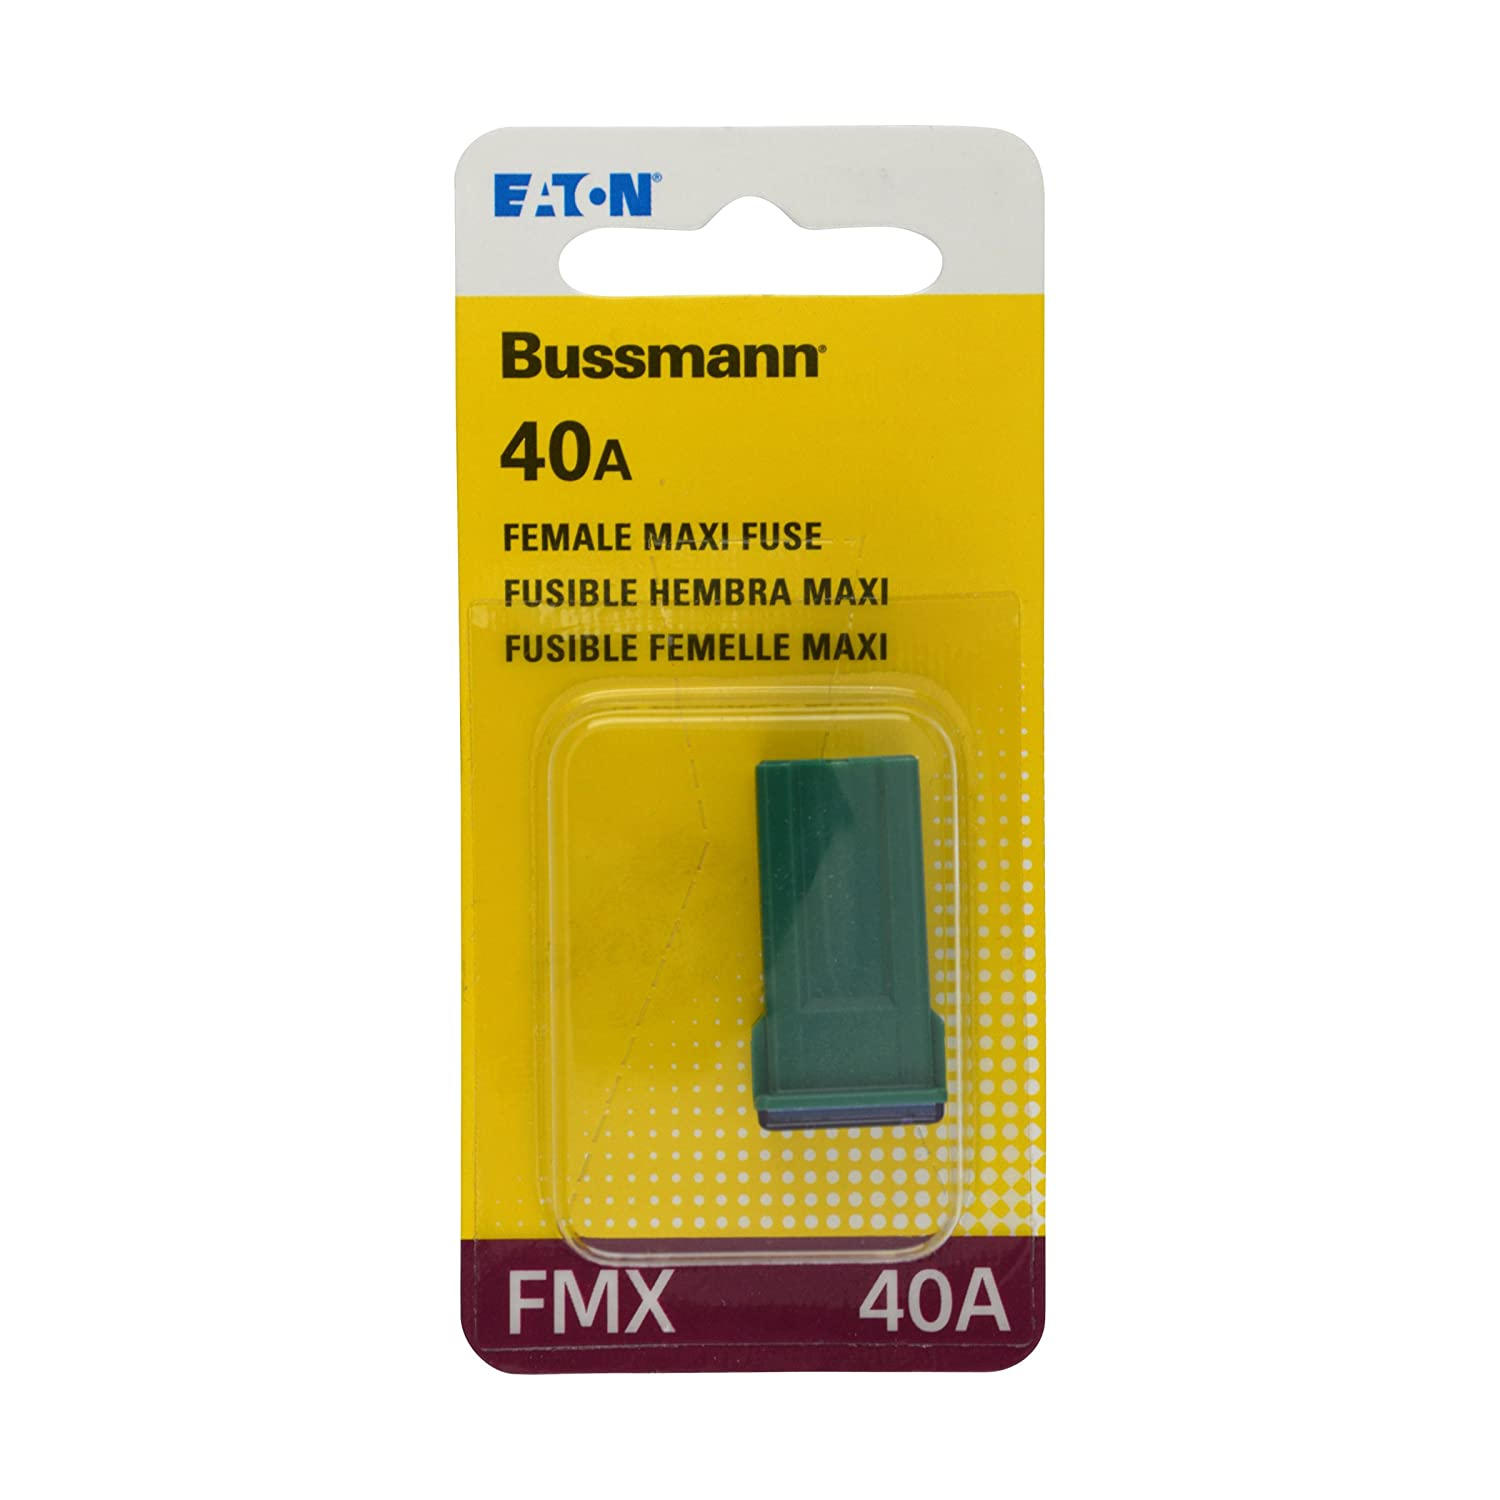 Bussmann Bp Fmx 40 Rp Green Amp Female Maxi Fuse Fuses Installed Wiring Harness Amazon Canada